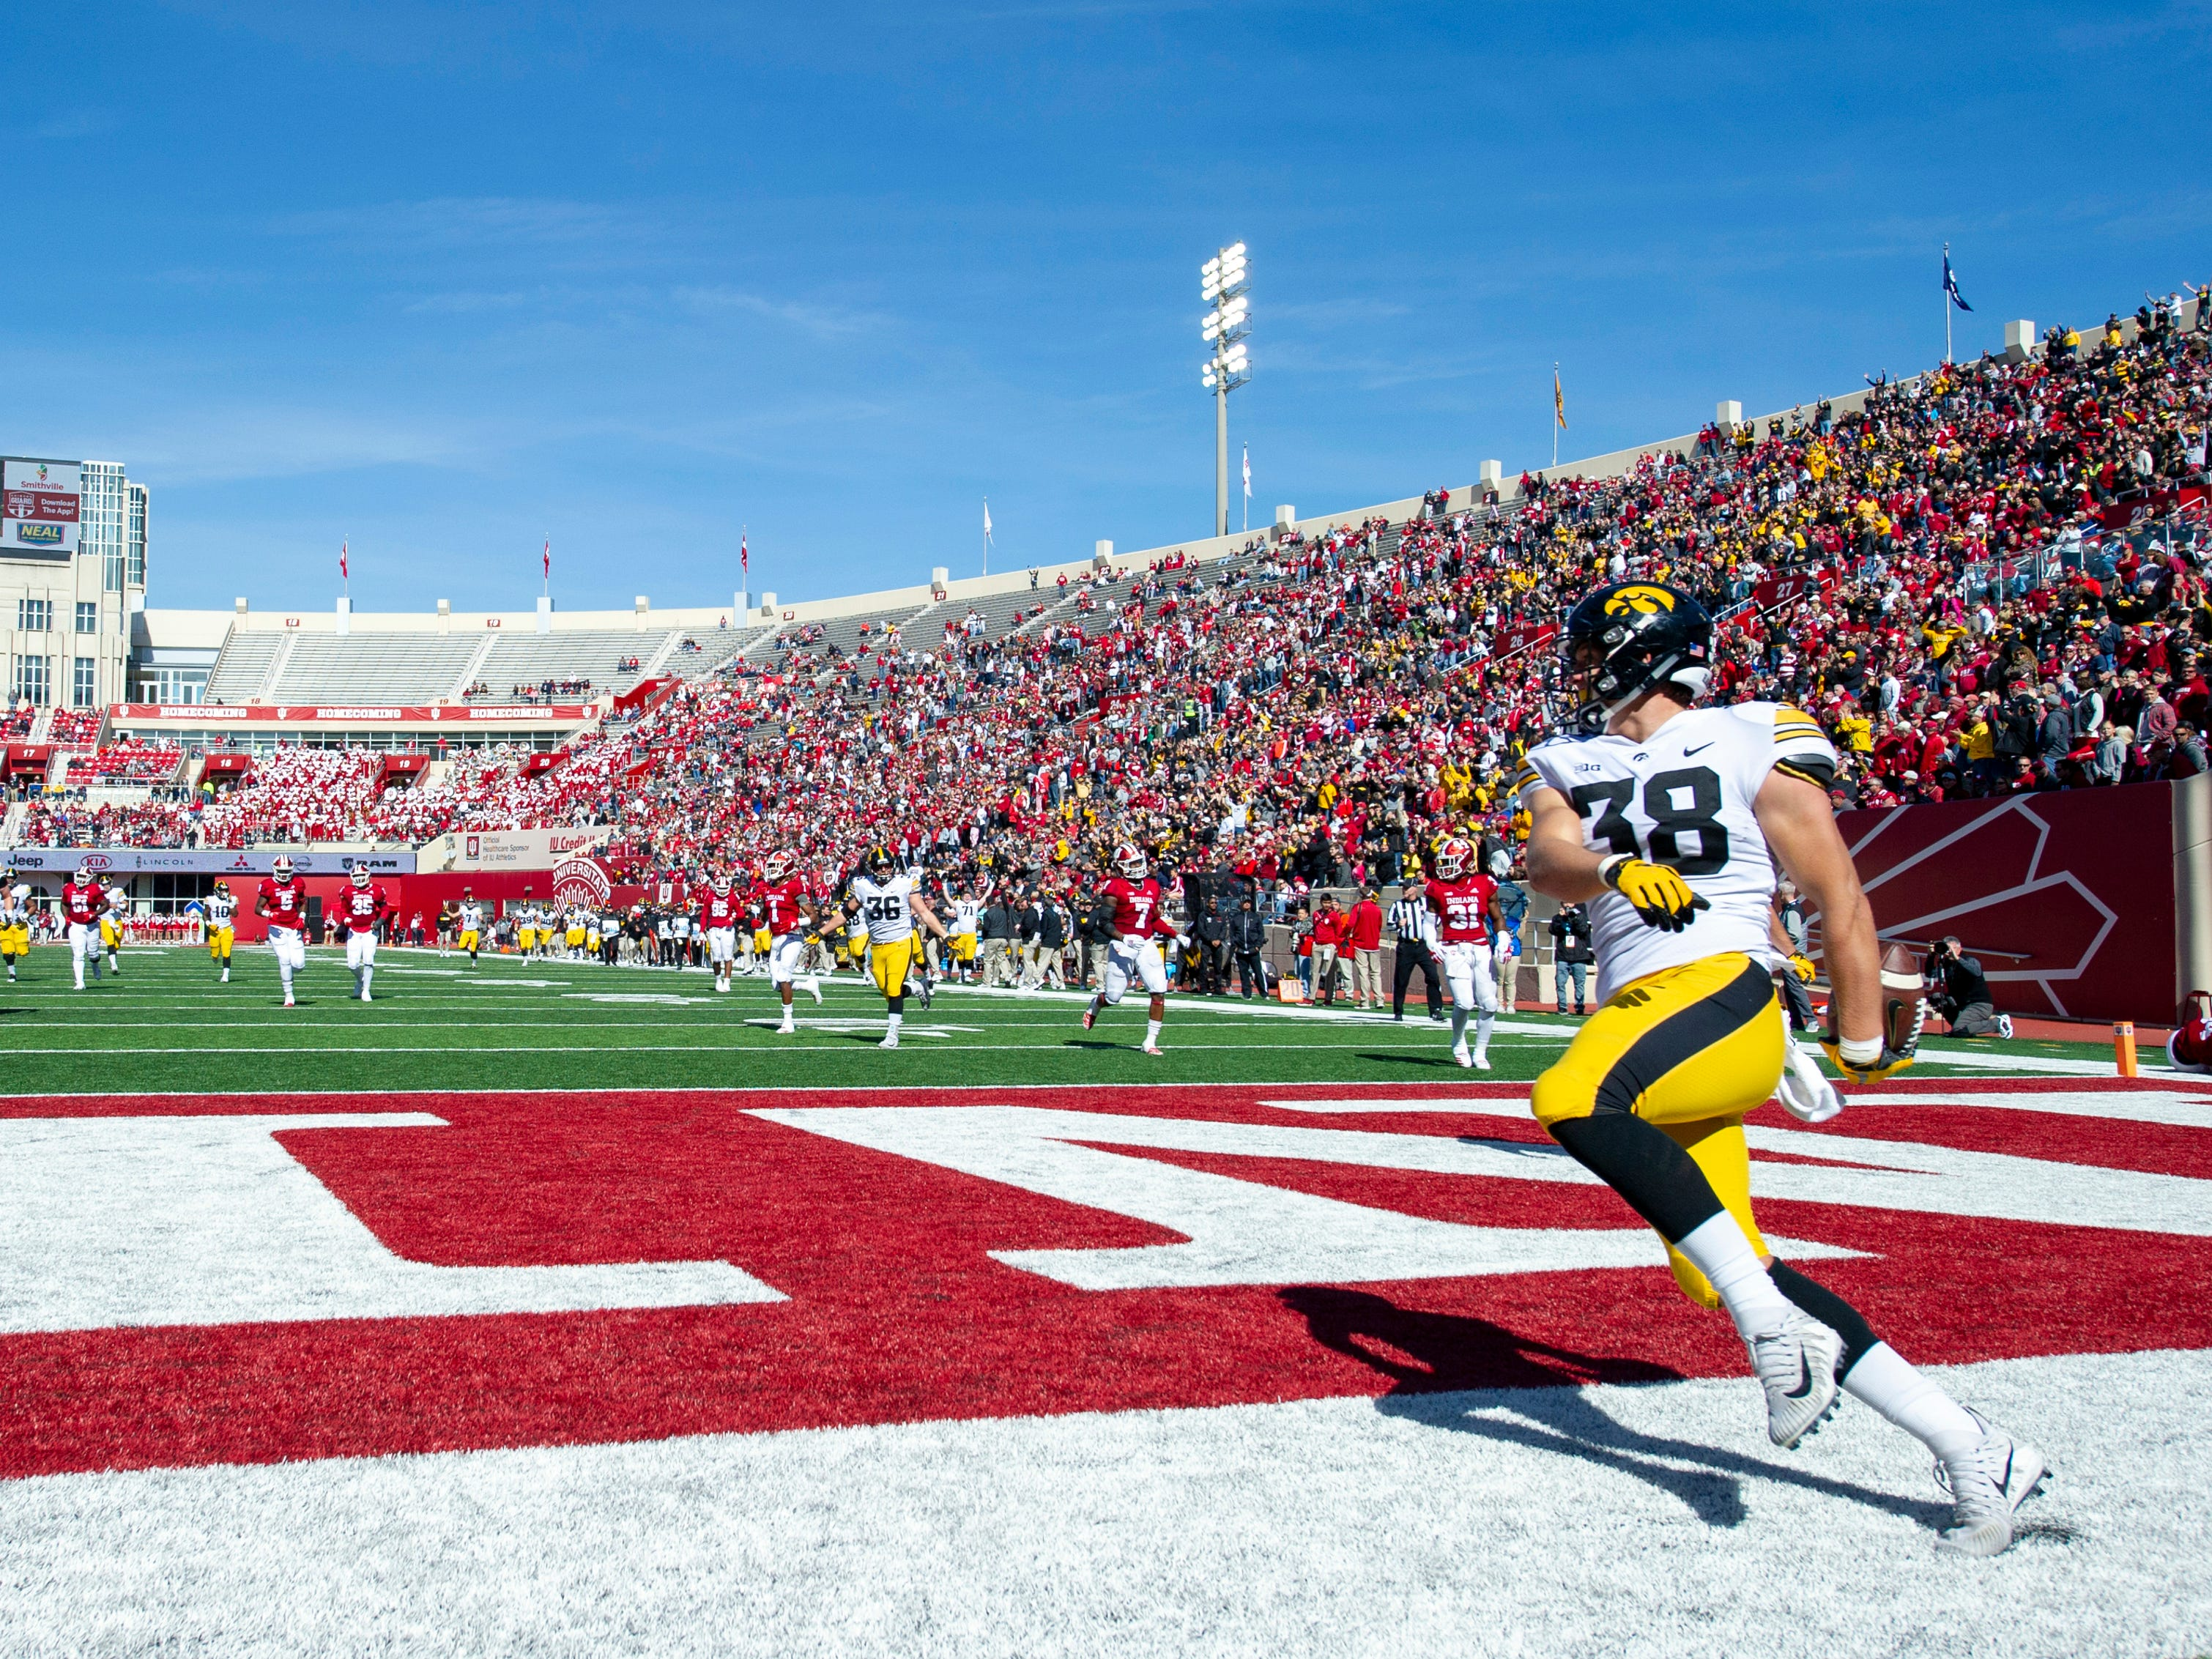 Iowa tight end T.J. Hockenson (38) reacts in the end zone after scoring a touchdown in the second half of an NCAA college football game Saturday, Oct. 13, 2018, in Bloomington, Ind. Iowa won 42-16.